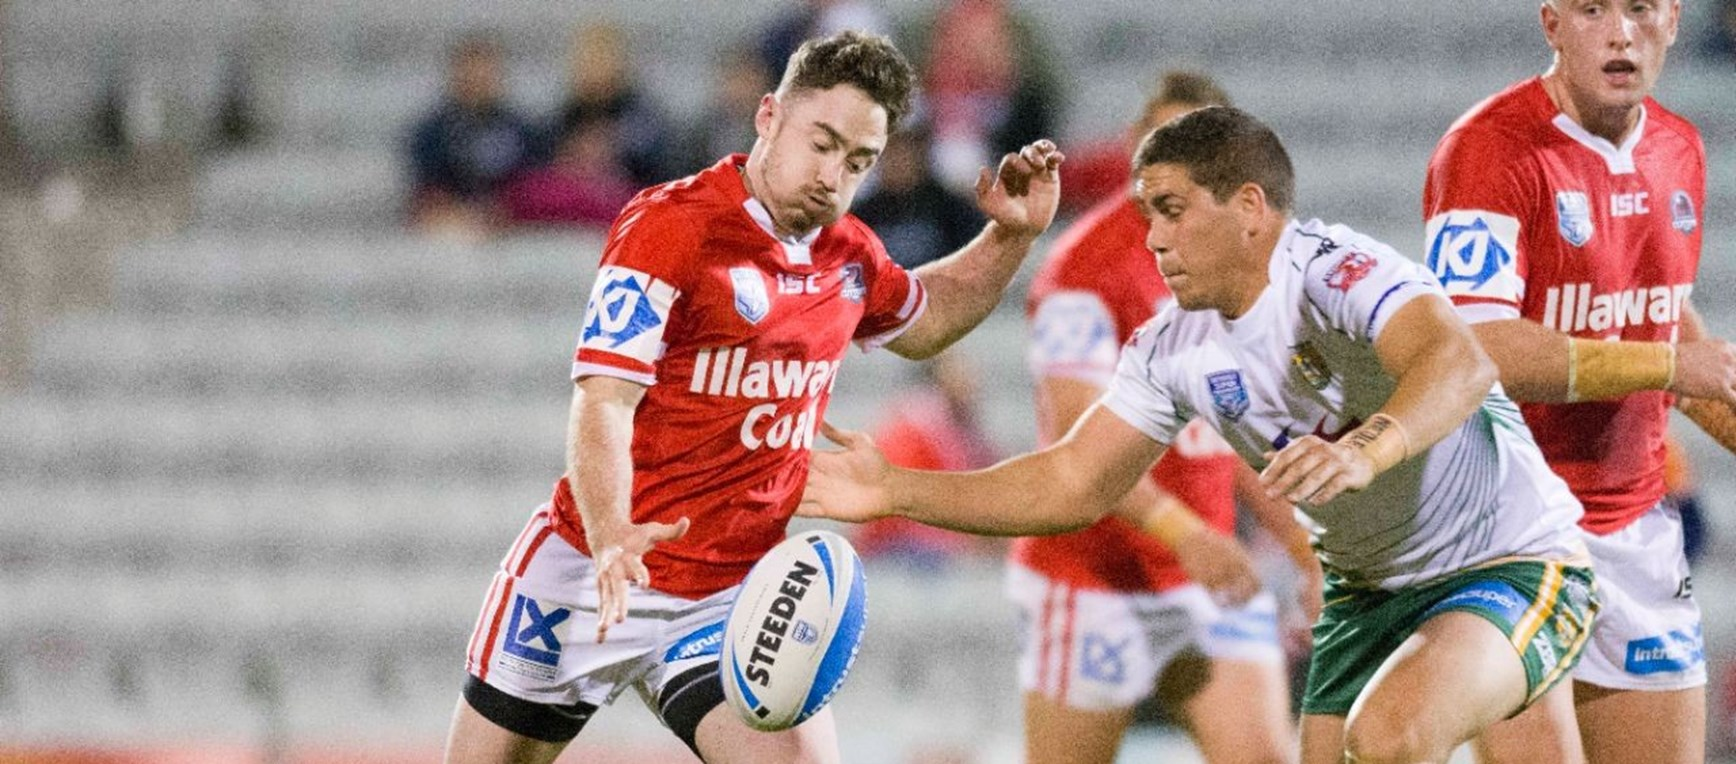 Gallery: NSW Cup Round 12 v Wyong Roos